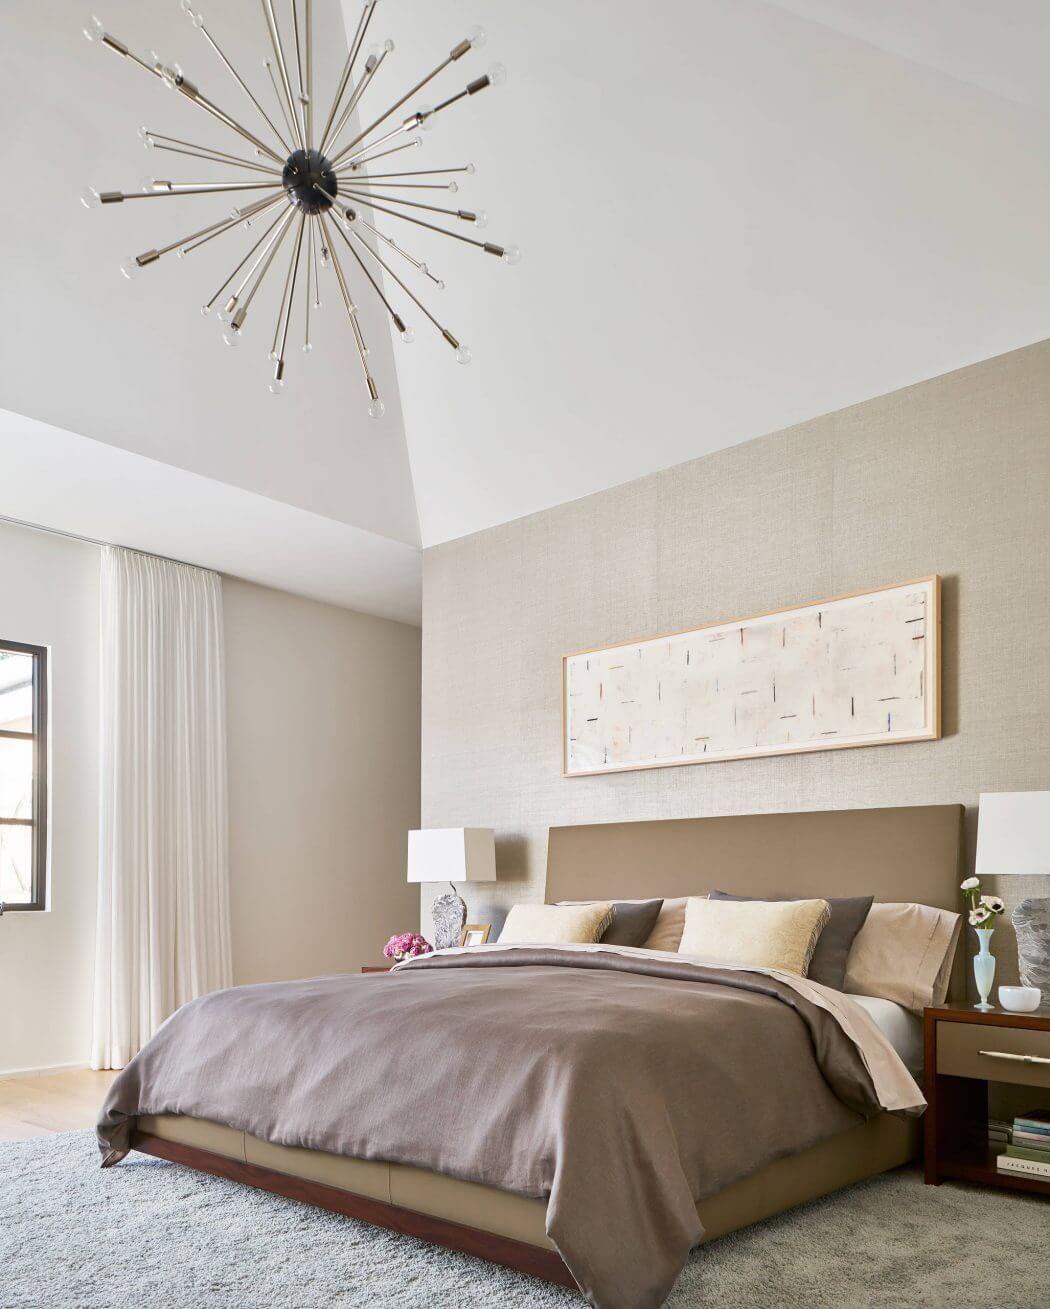 House in Dallas by Coats Homes | Interiors | Pinterest | Dallas ...